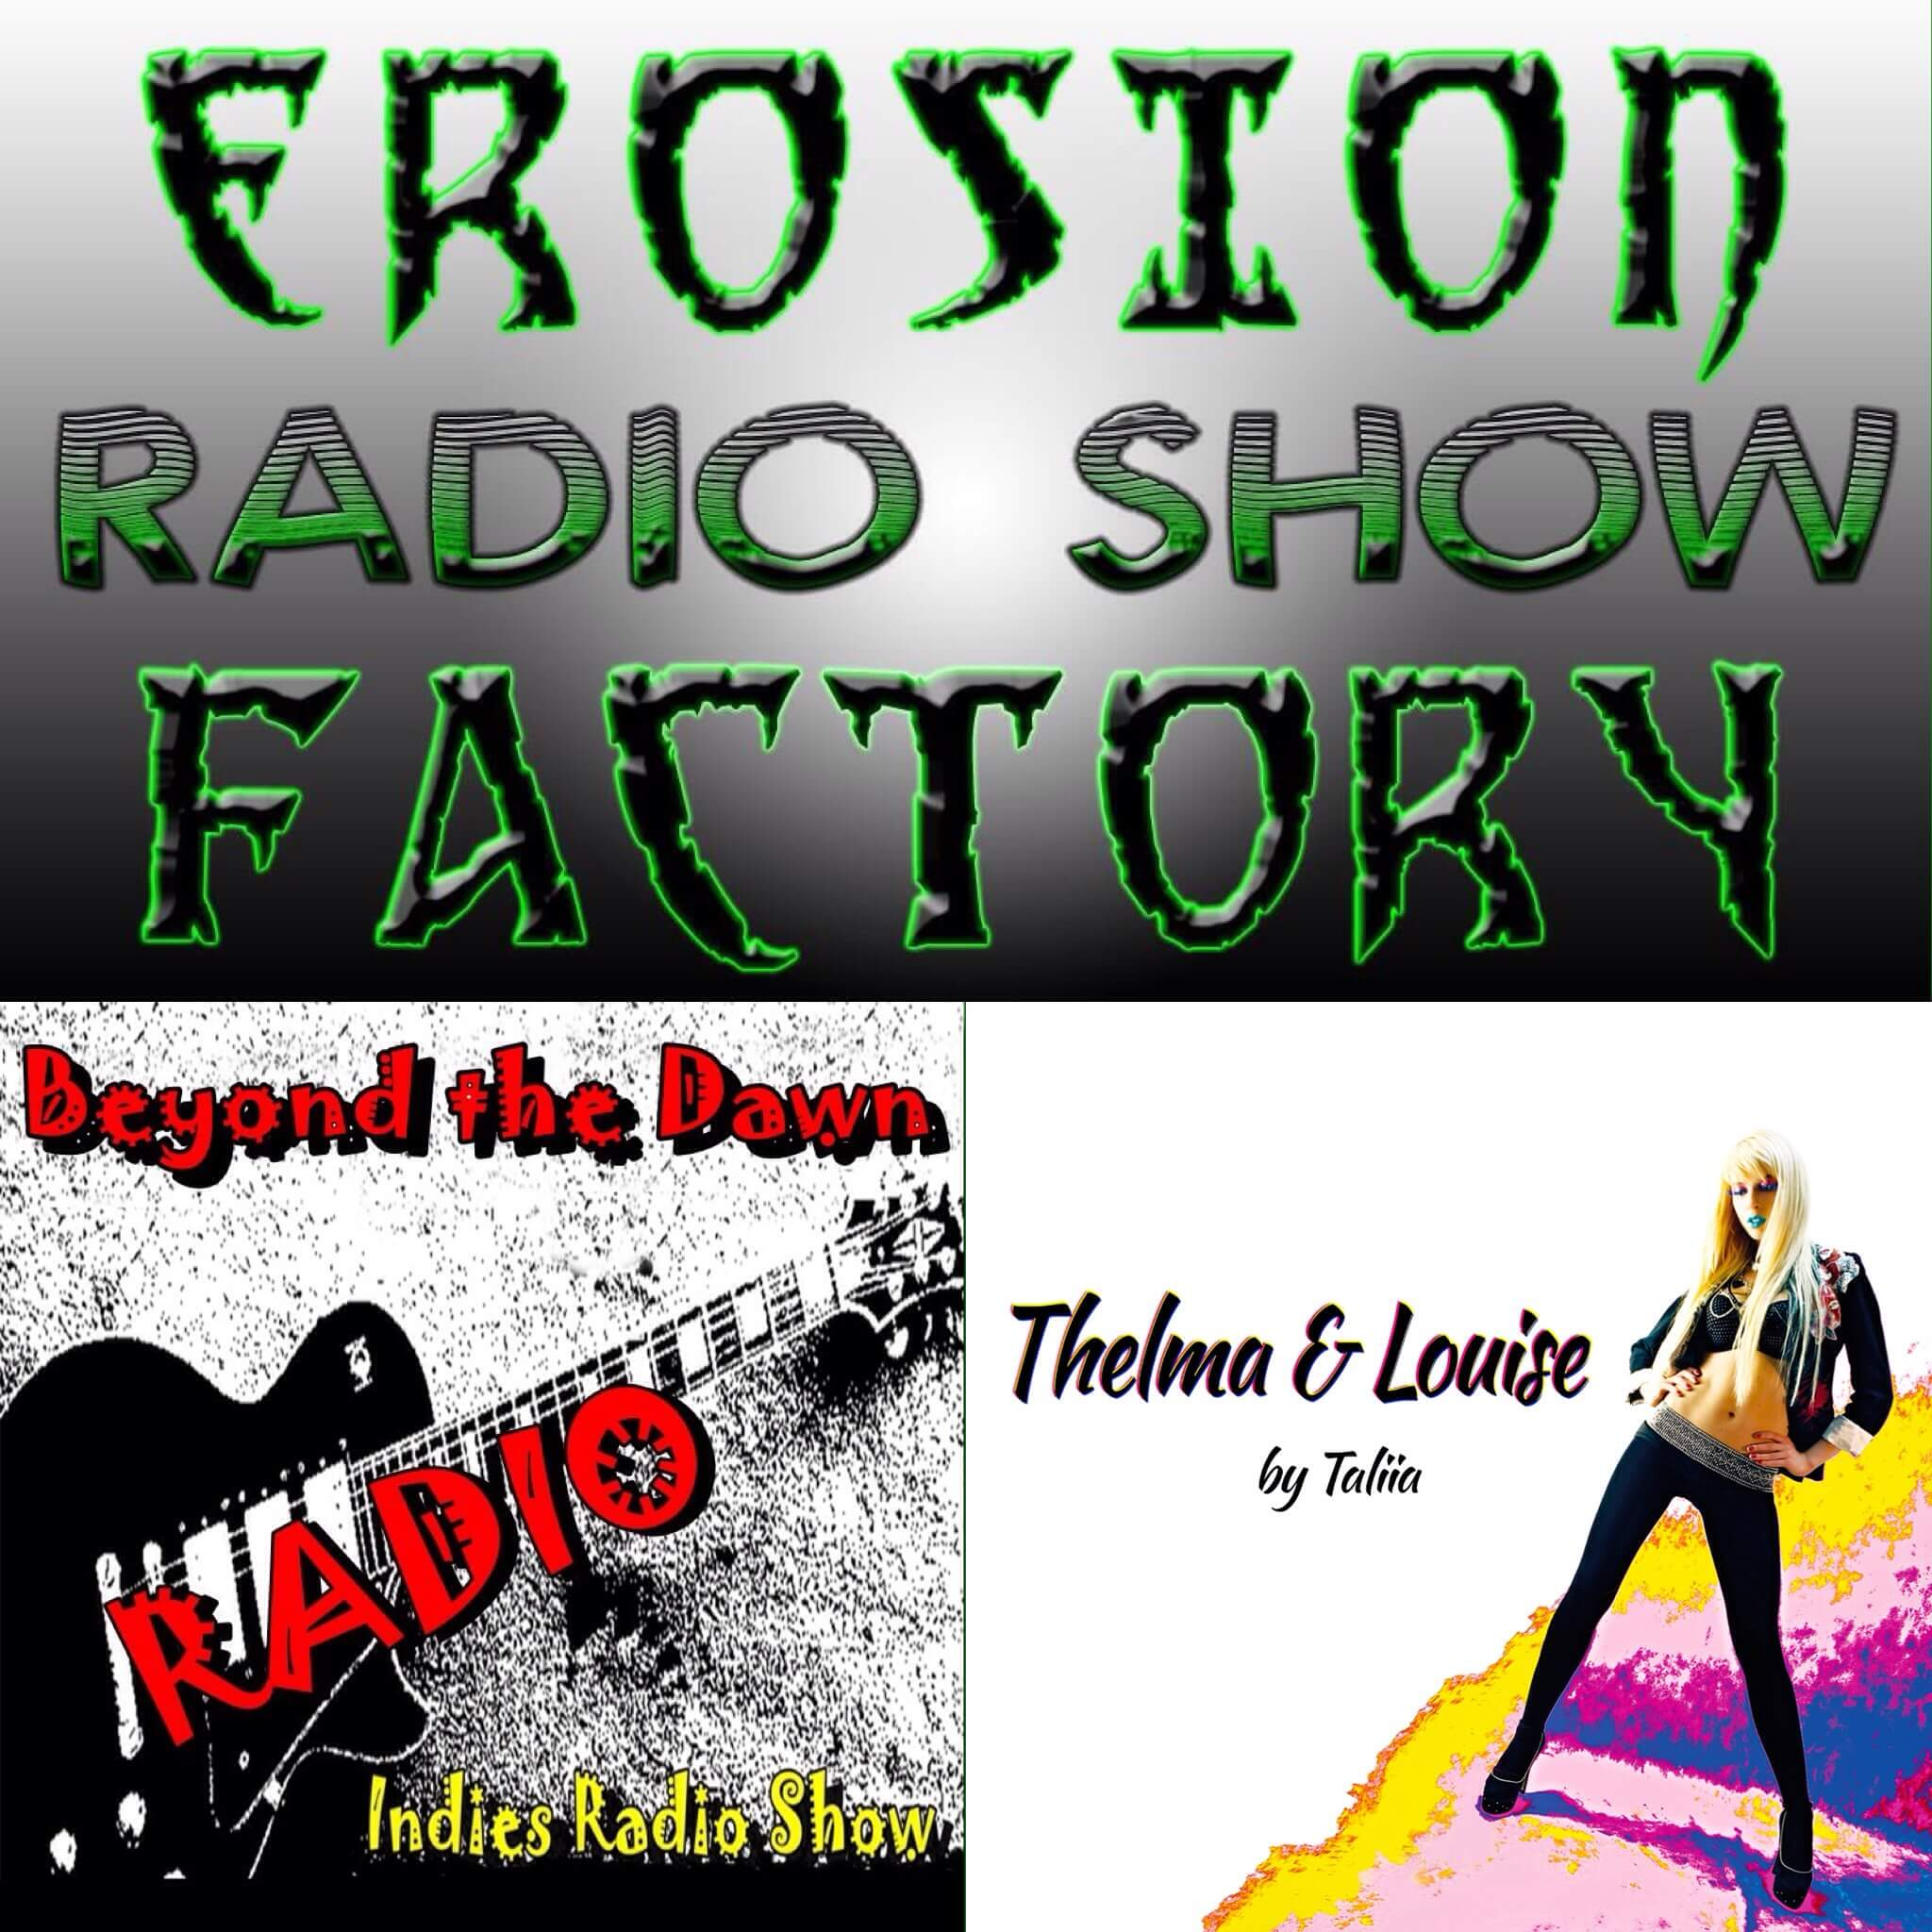 Erosion Factory Radio Show on Beyond The Dawn Radio (BTD Radio)